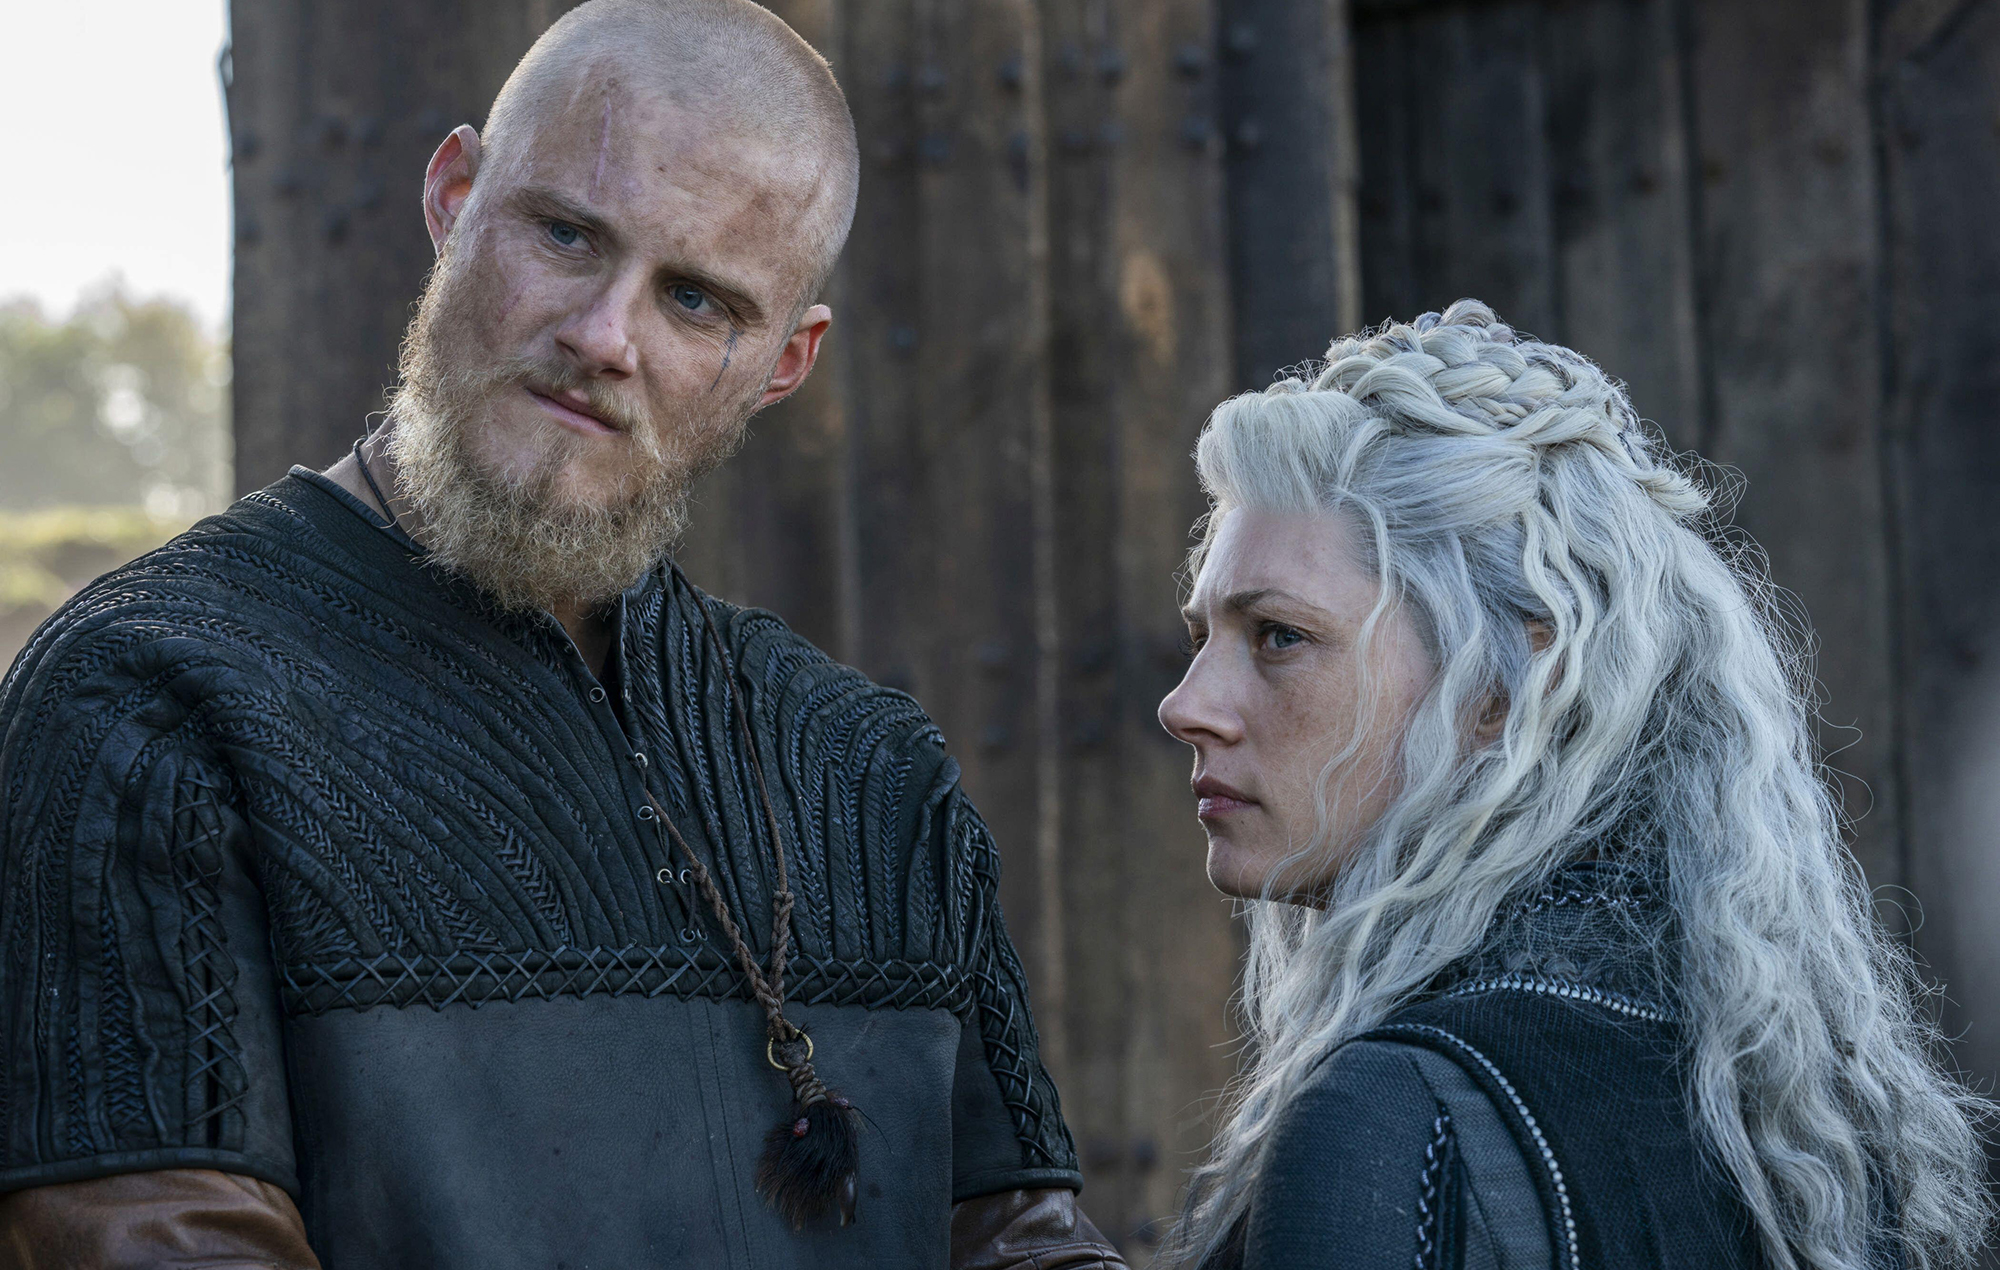 Vikings Season 6 Part 2 Five Questions We Want Answered